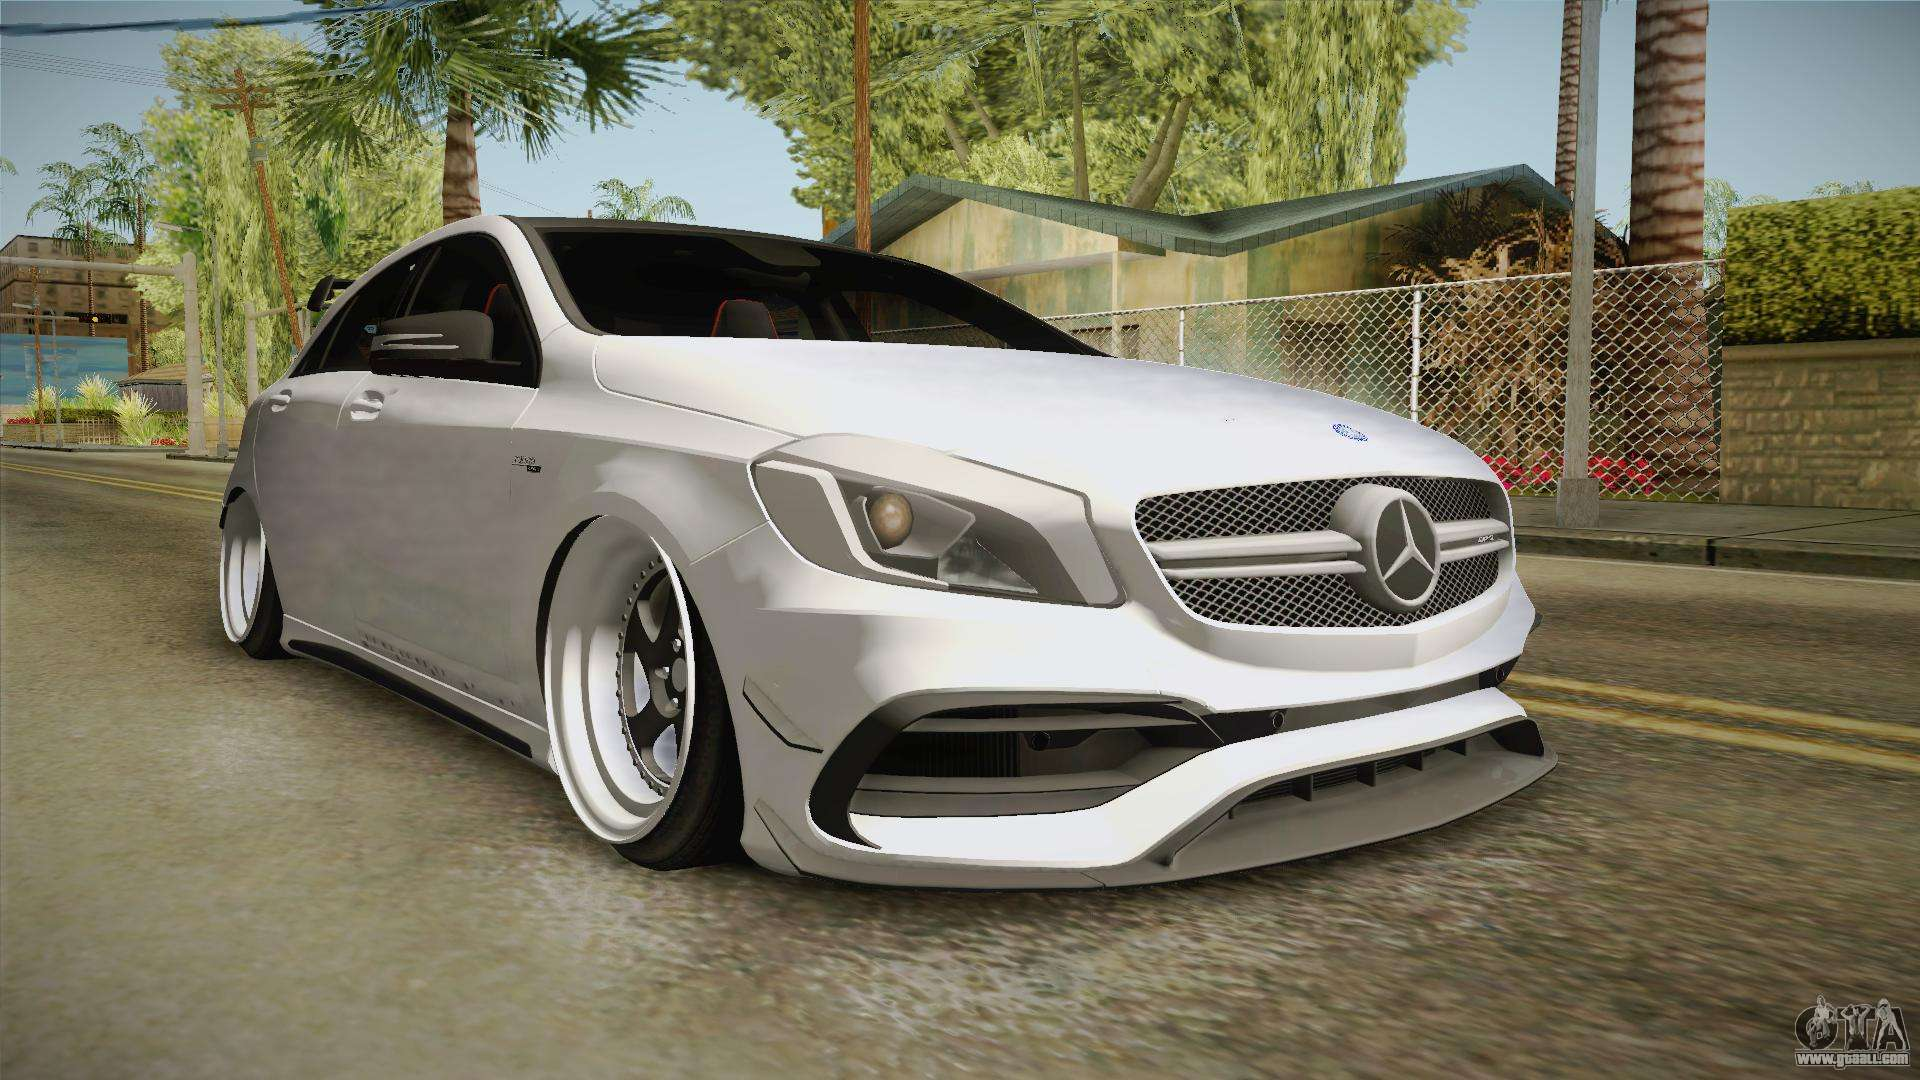 Mercedes benz a45 amg 4matic 2016 for gta san andreas for Is mercedes benz a reliable car